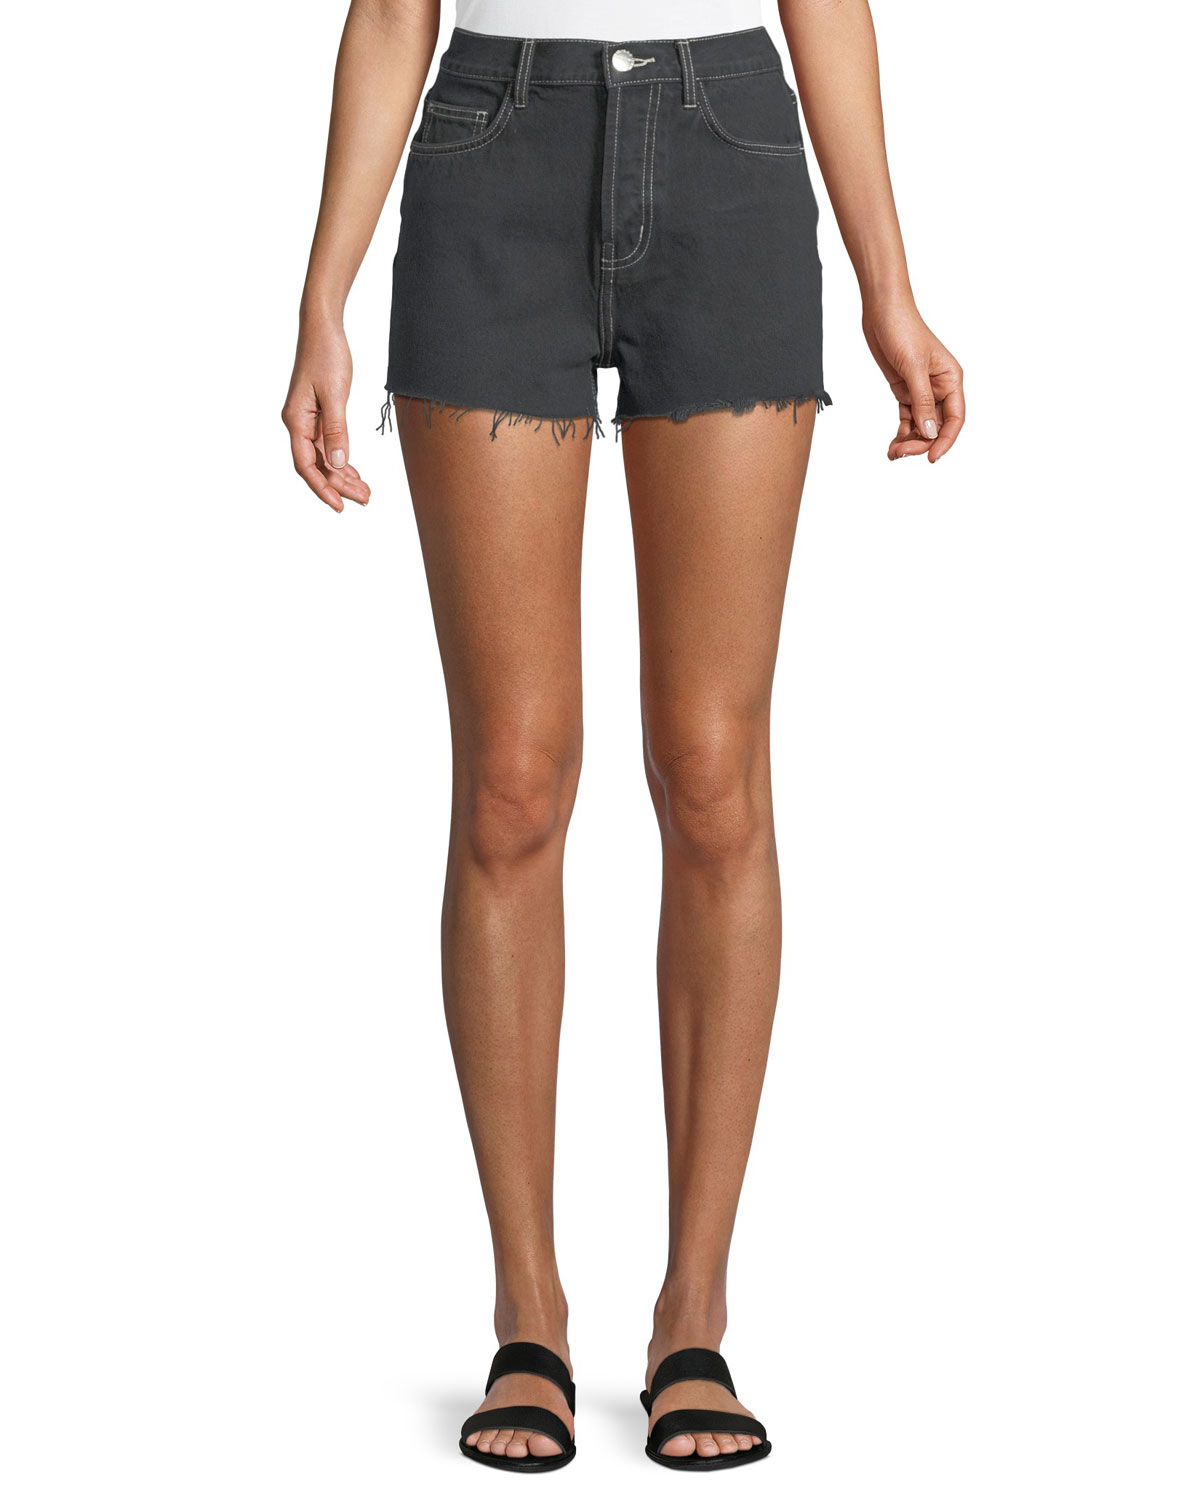 The Ultra High-Waist Cutoff Shorts with Raw-Edge Hem